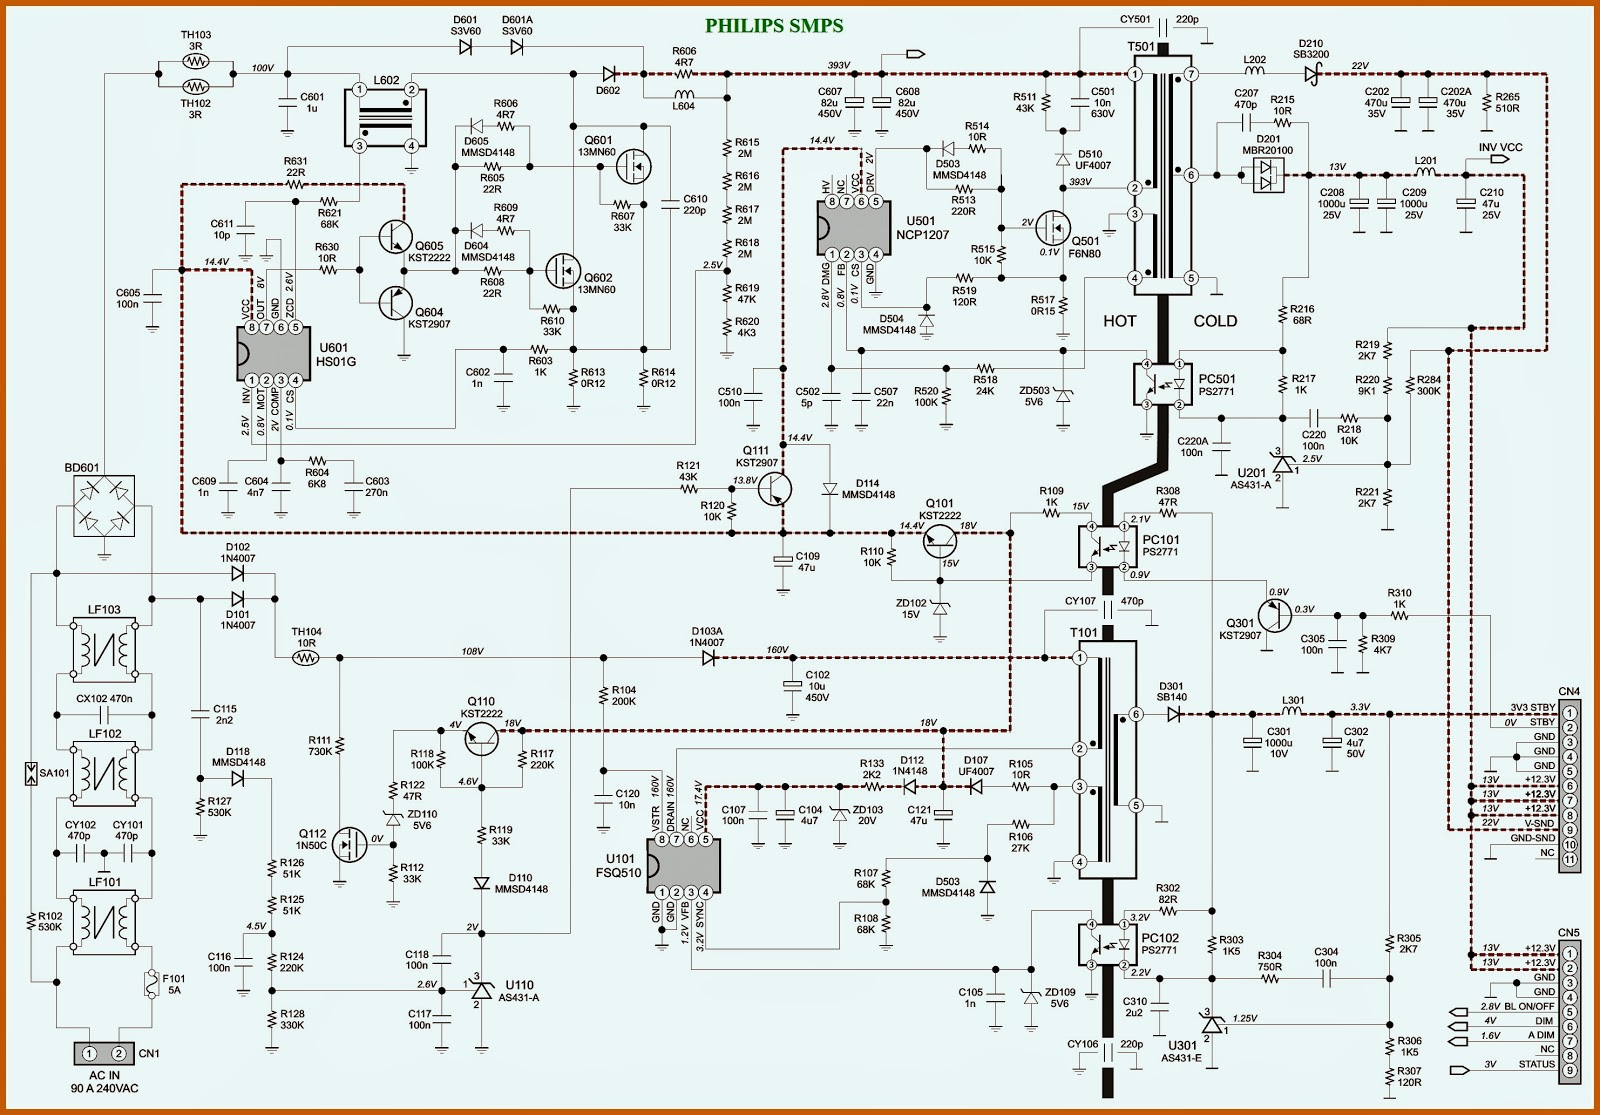 Led Display Panel Wiring Diagram Cat5e Wall Jack R 568 Lcd Tv Simple Diagramtv Power Schematic Site Software